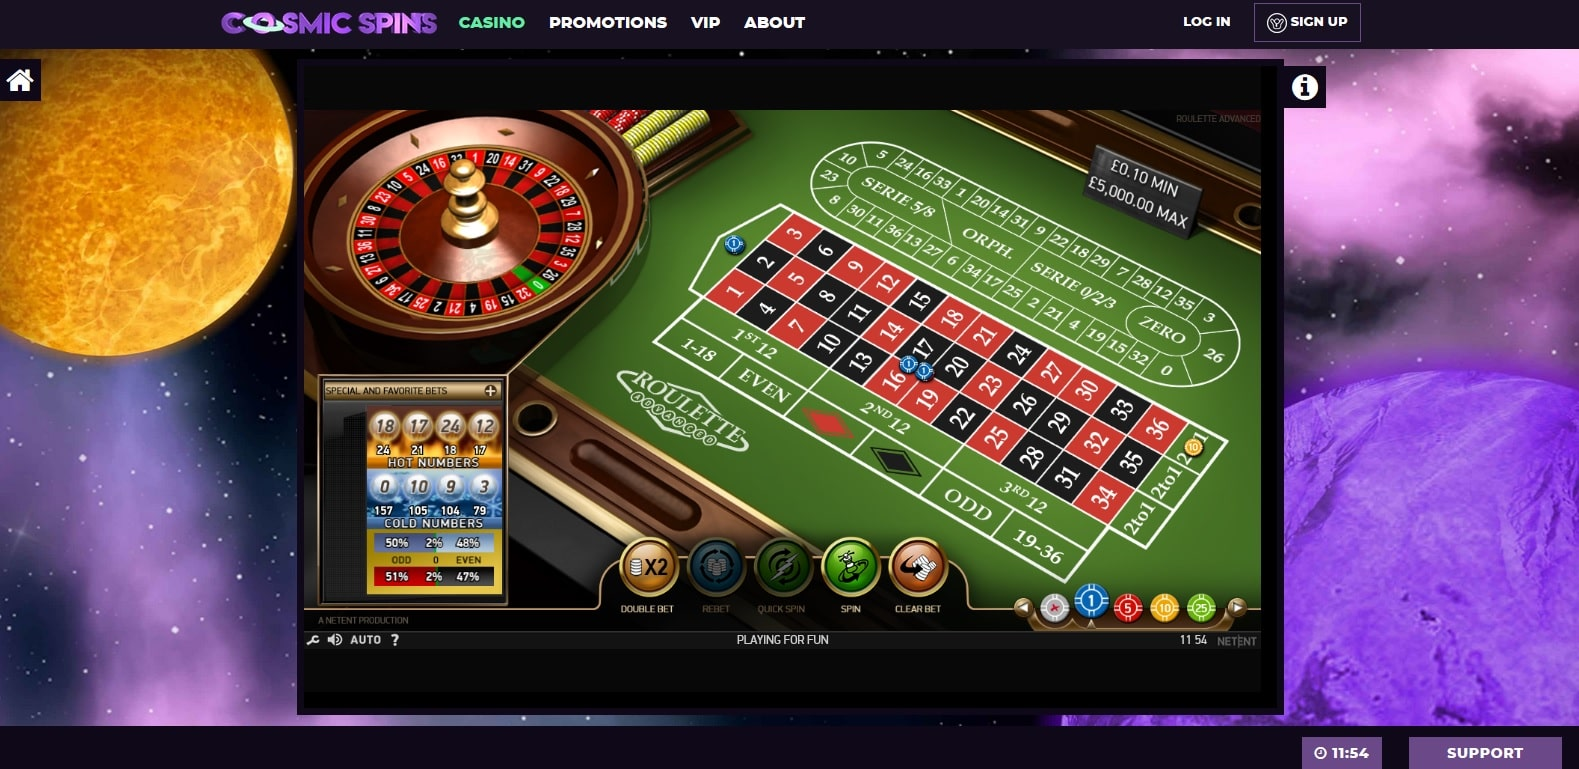 cosmic spins casino gameplay roulette advanced